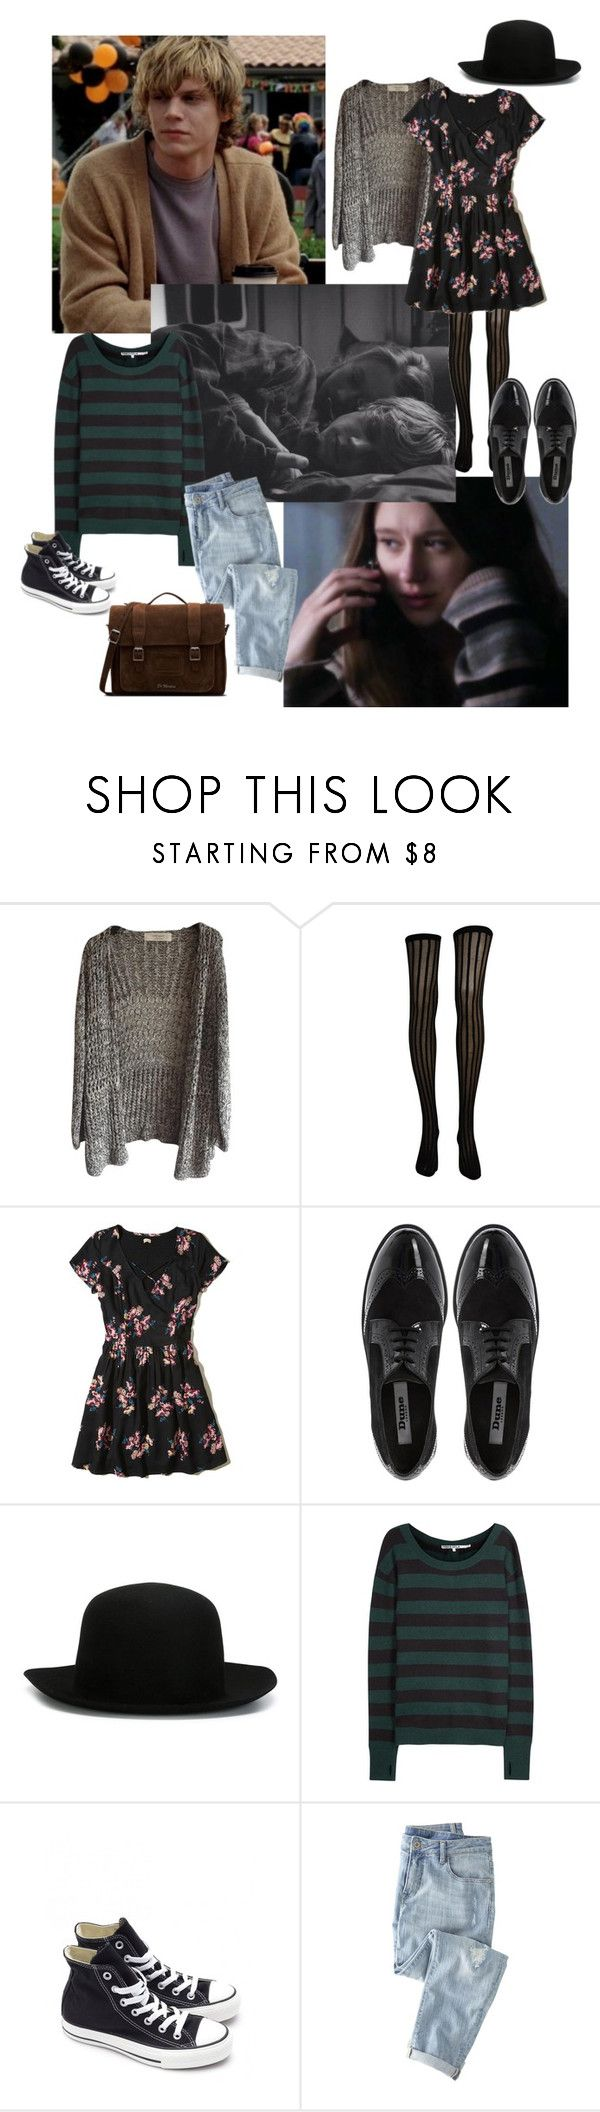 """tate and violet//american horror story"" by ellxelair ❤ liked on Polyvore featuring CO, Hollister Co., Dune, ISABEL BENENATO, Pam & Gela, Converse, Wrap, Dr. Martens, americanhorrorstory and violetharmon"